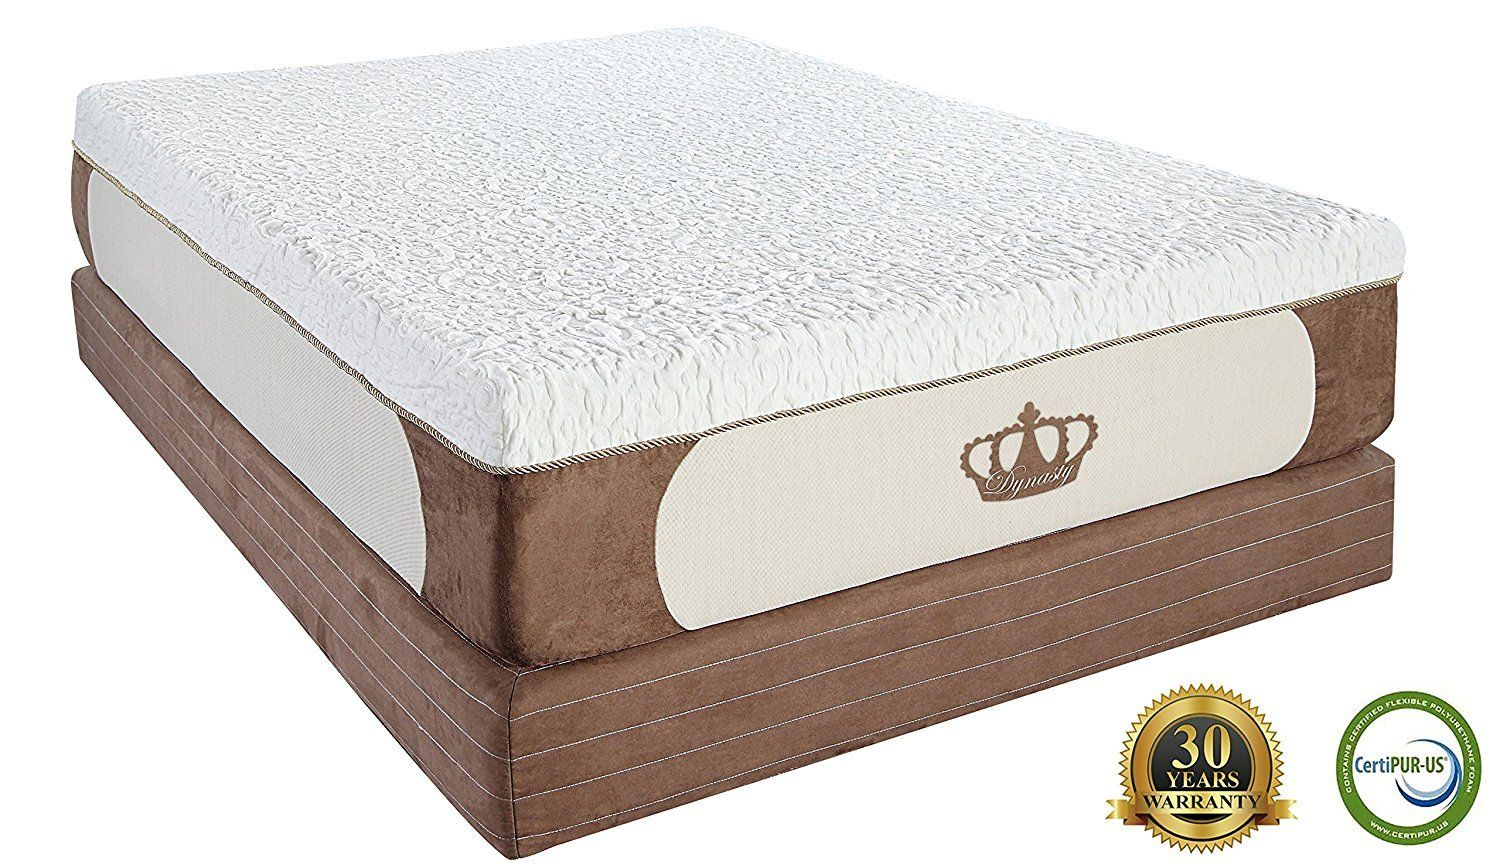 dynastymattress cool breeze 12inch gel memory foam mattress king